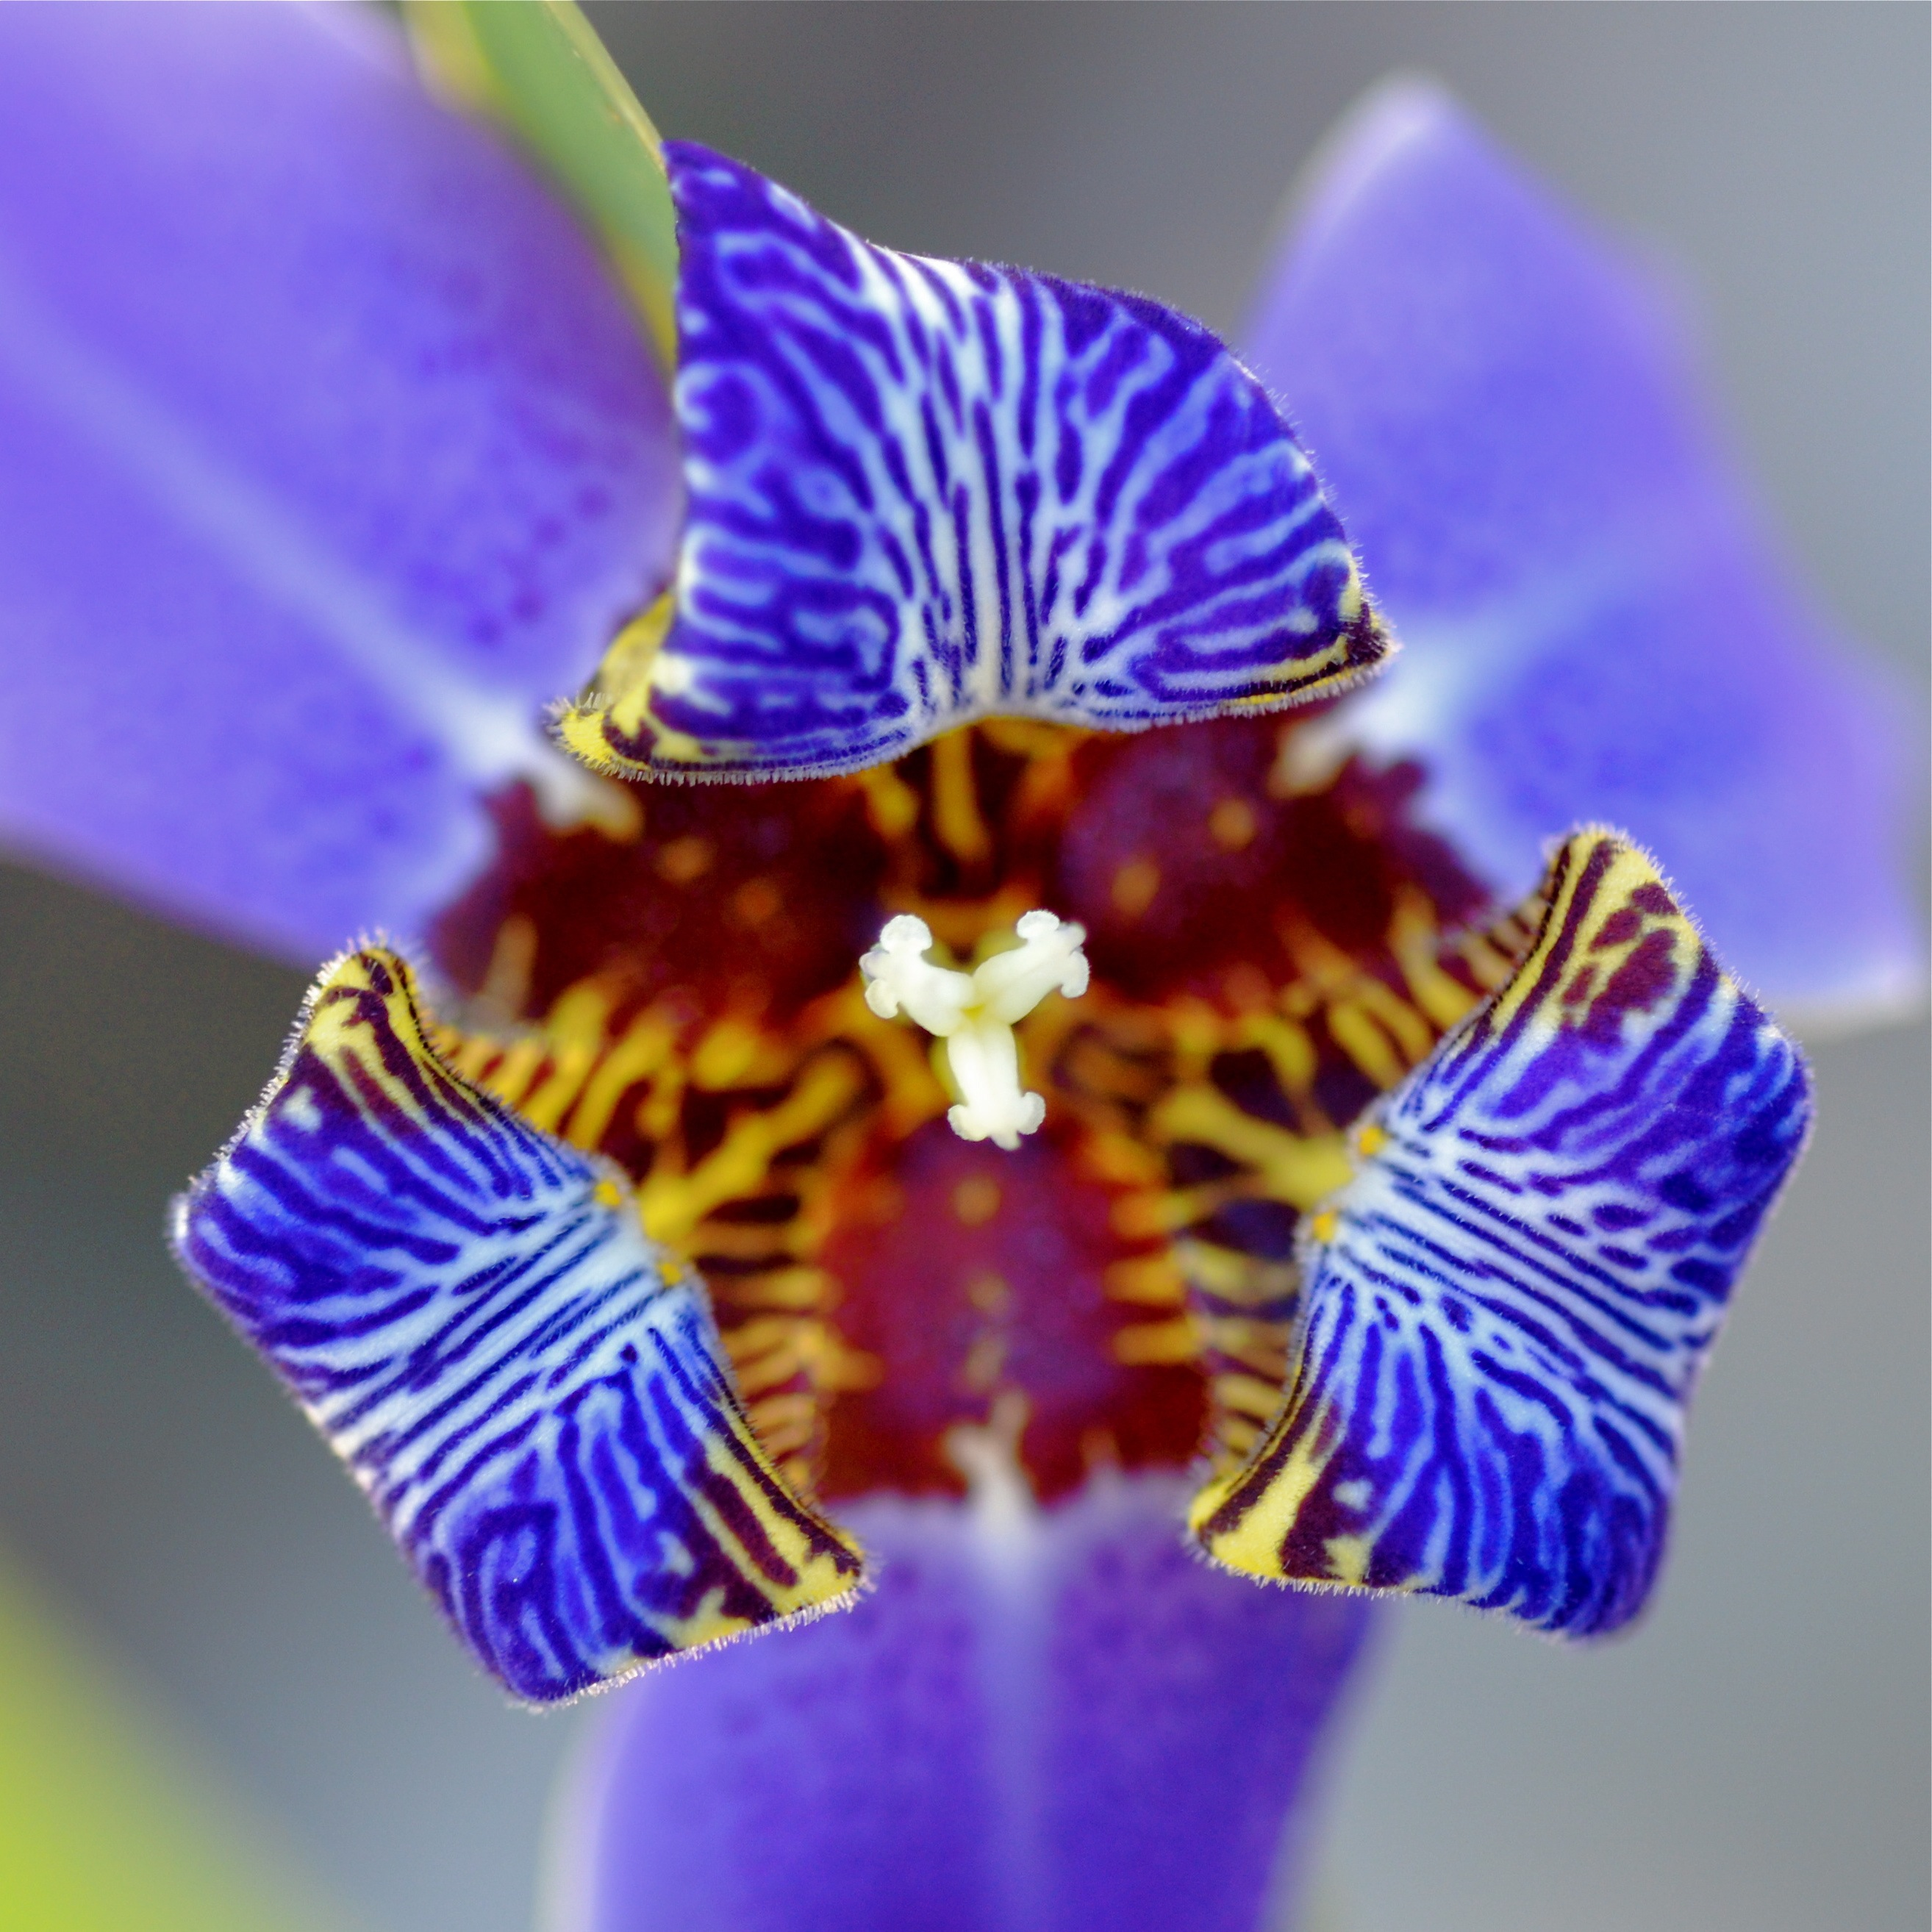 Iris - Property of National Geographic